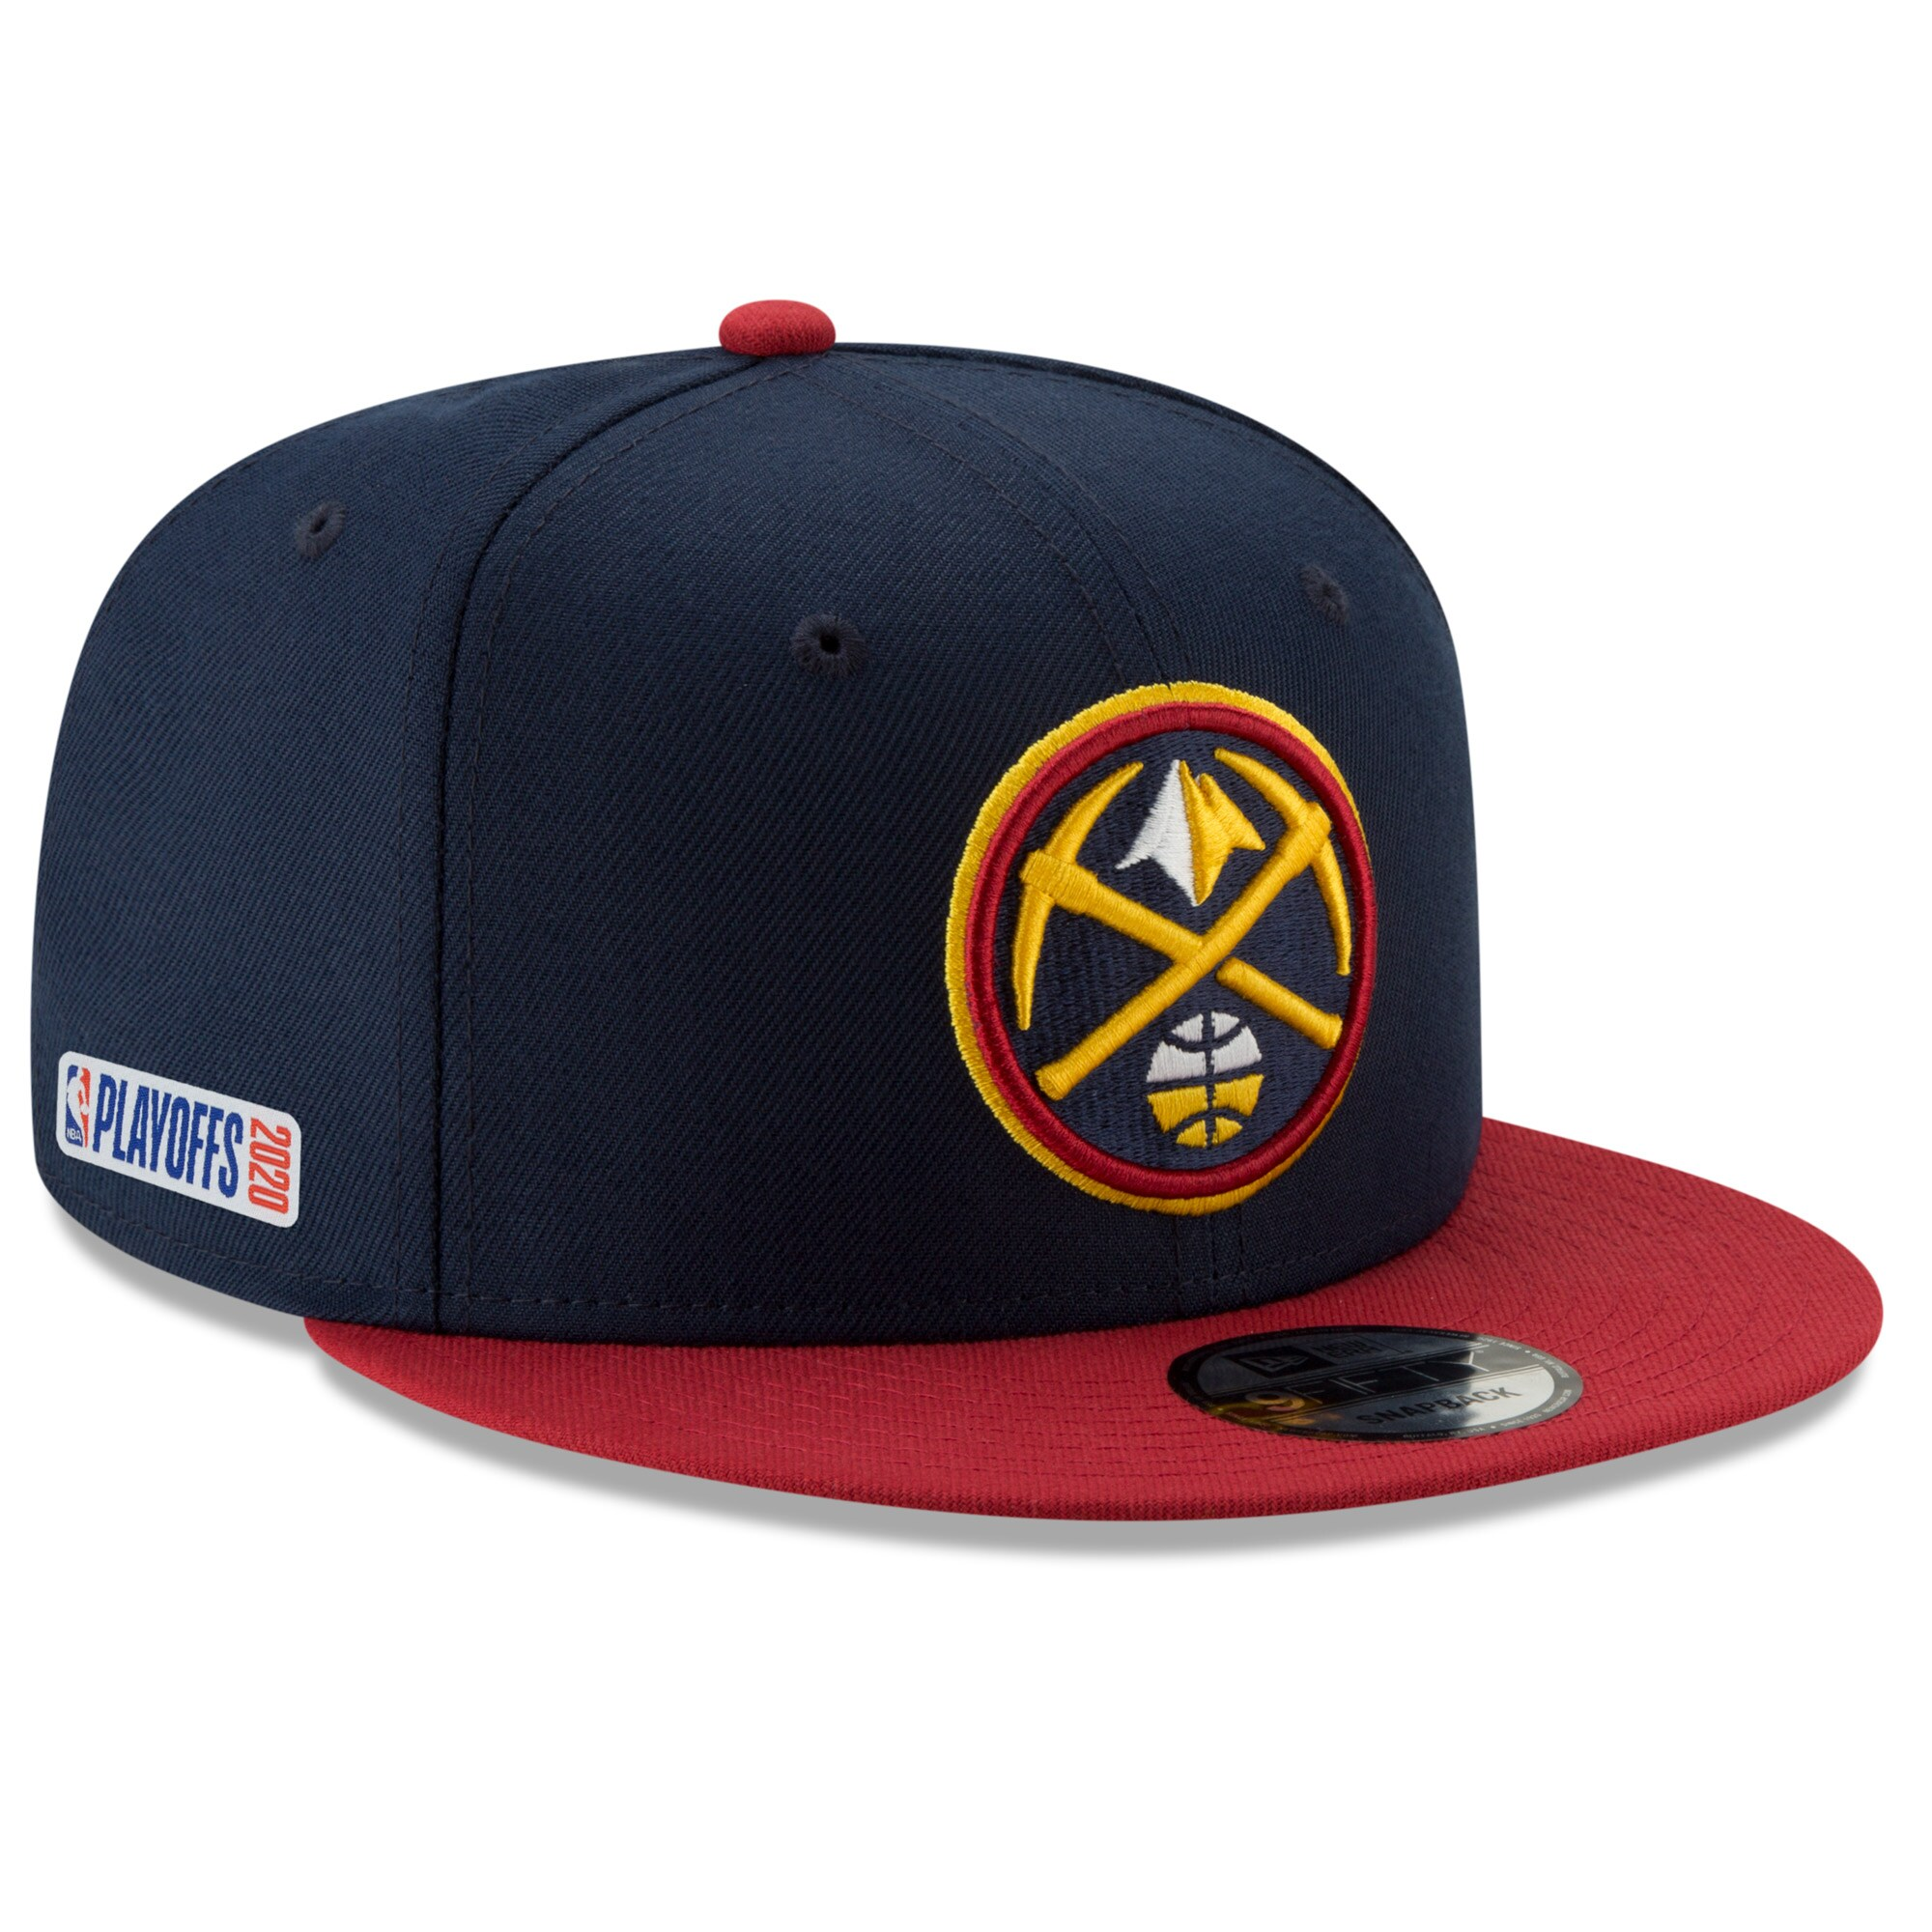 Denver Nuggets New Era 2020 NBA Playoffs Bound 2-Tone 9FIFTY Snapback Adjustable Hat - Navy